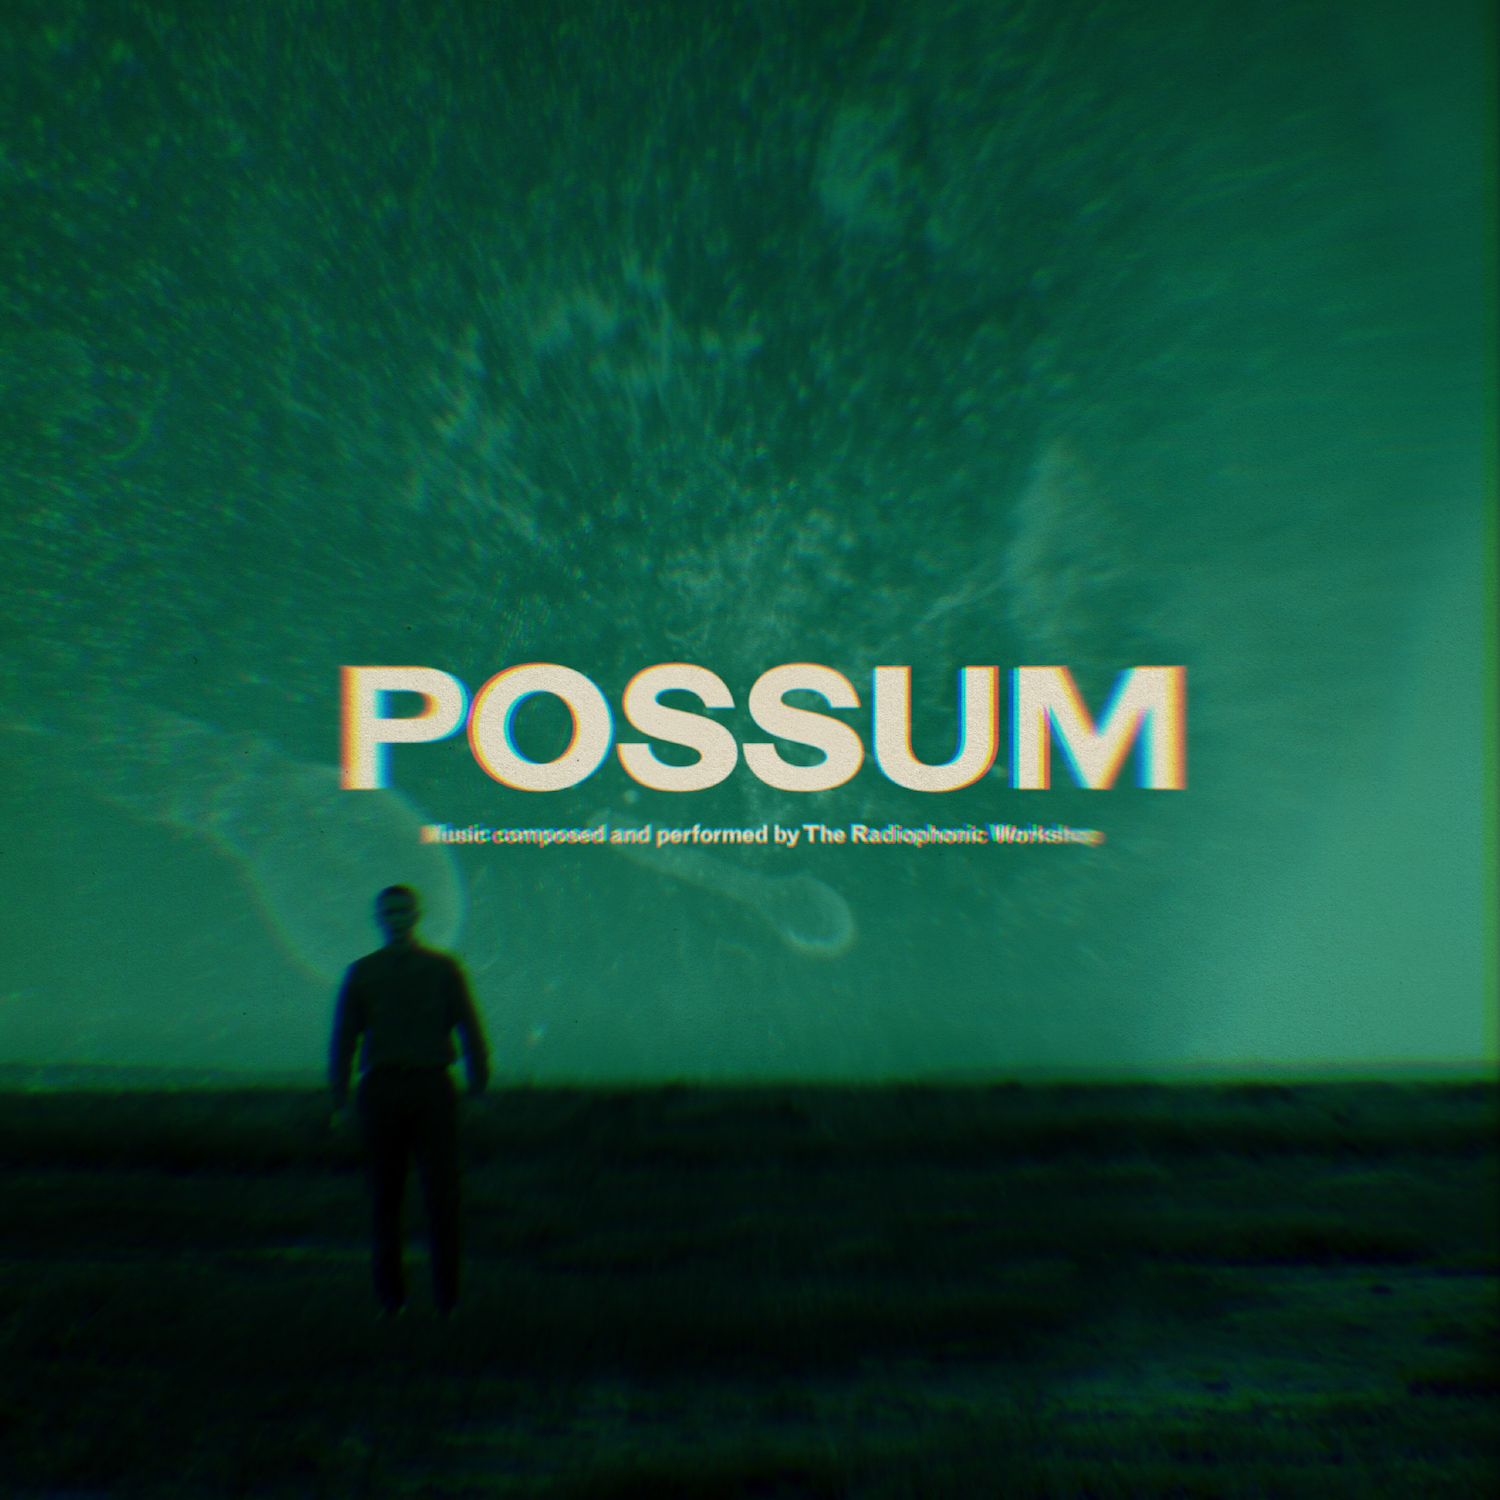 Possum soundtrack album cover